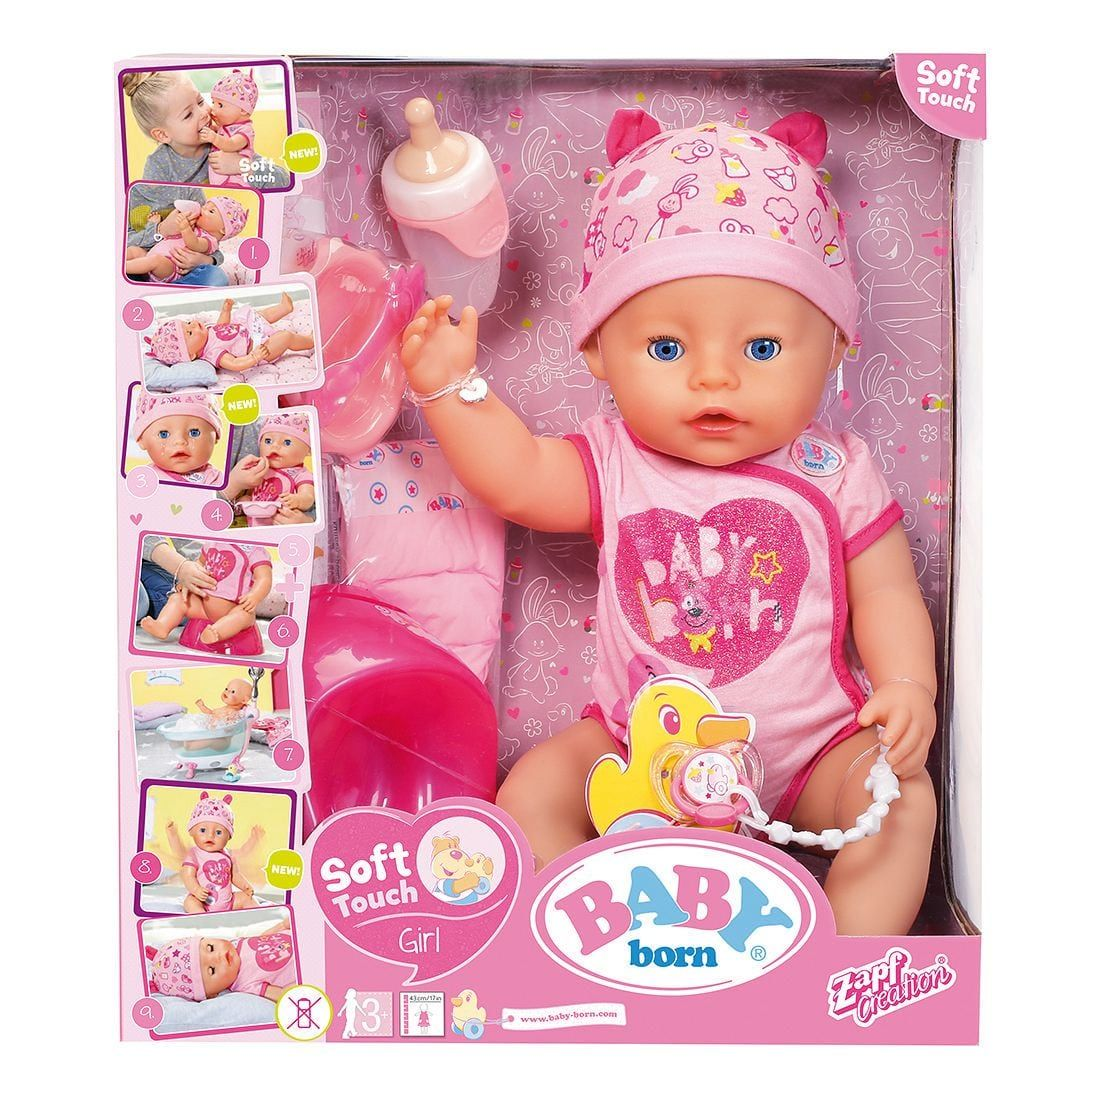 Baby Born® Soft Touch Doll Pink (With images) Panenky